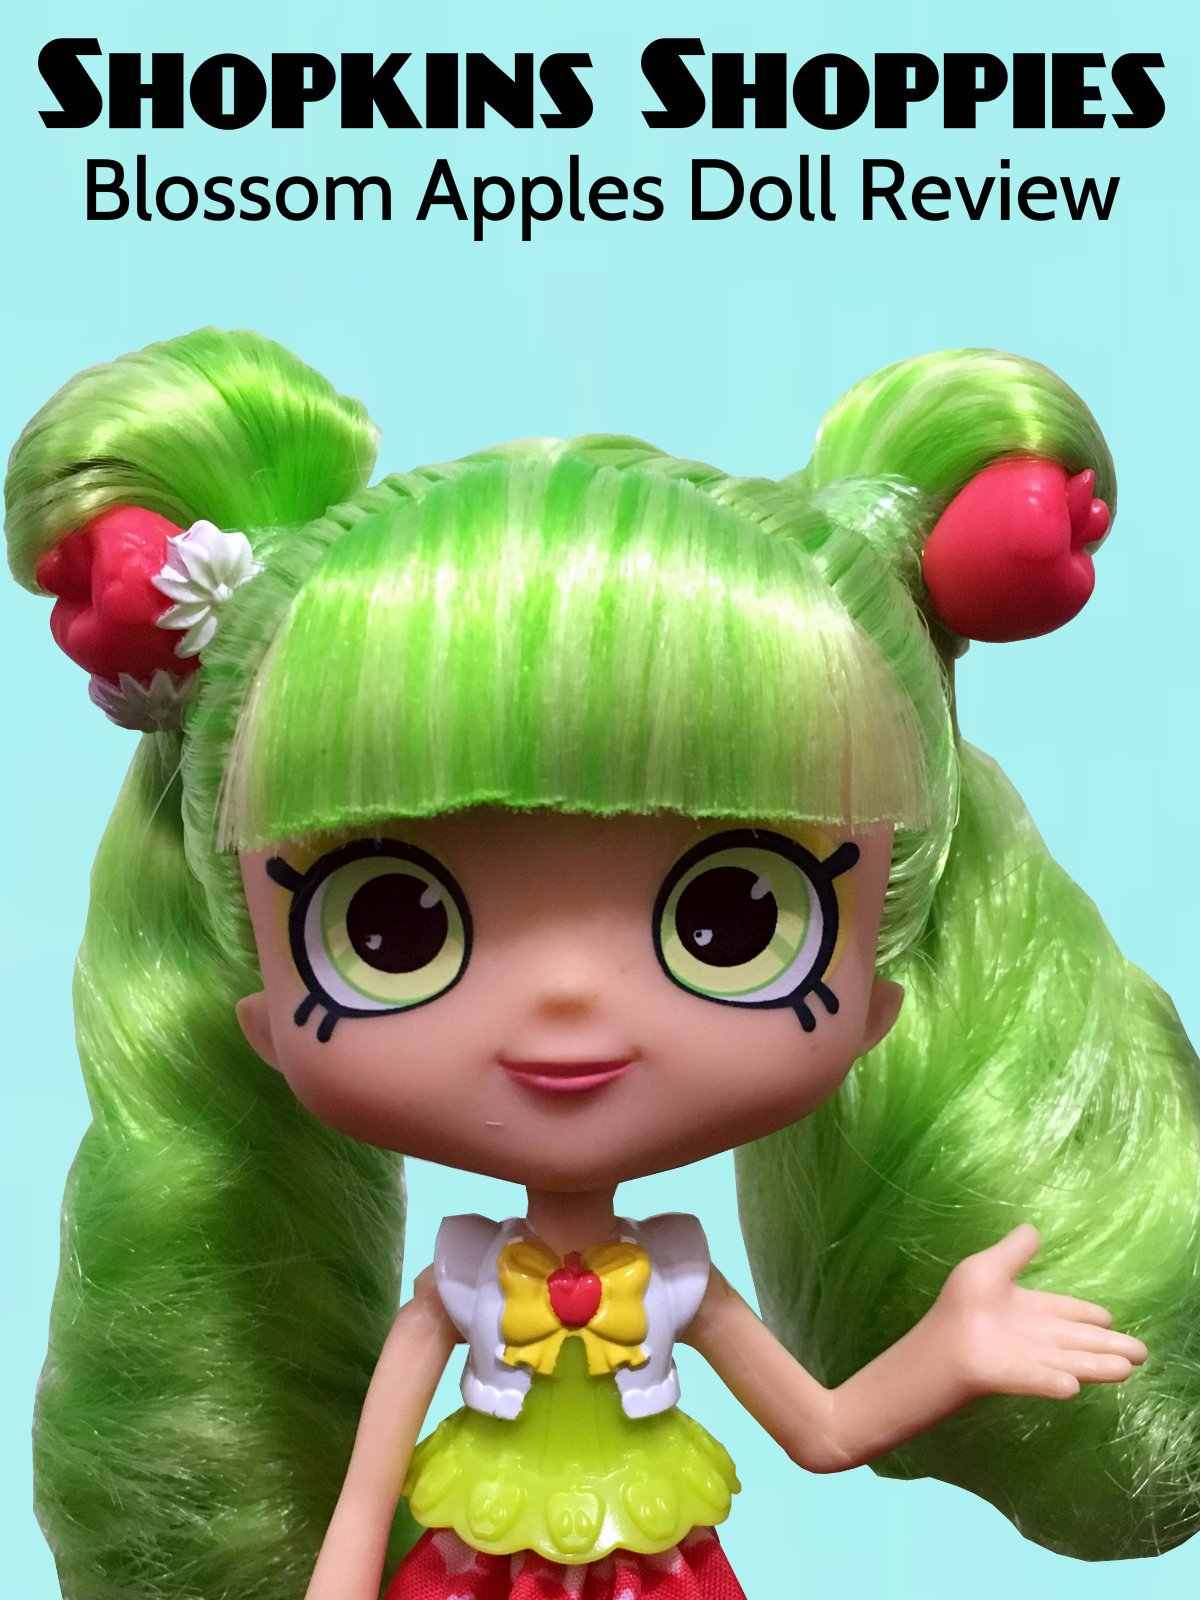 Review: Shopkins Shoppies Blossom Apples Doll Review